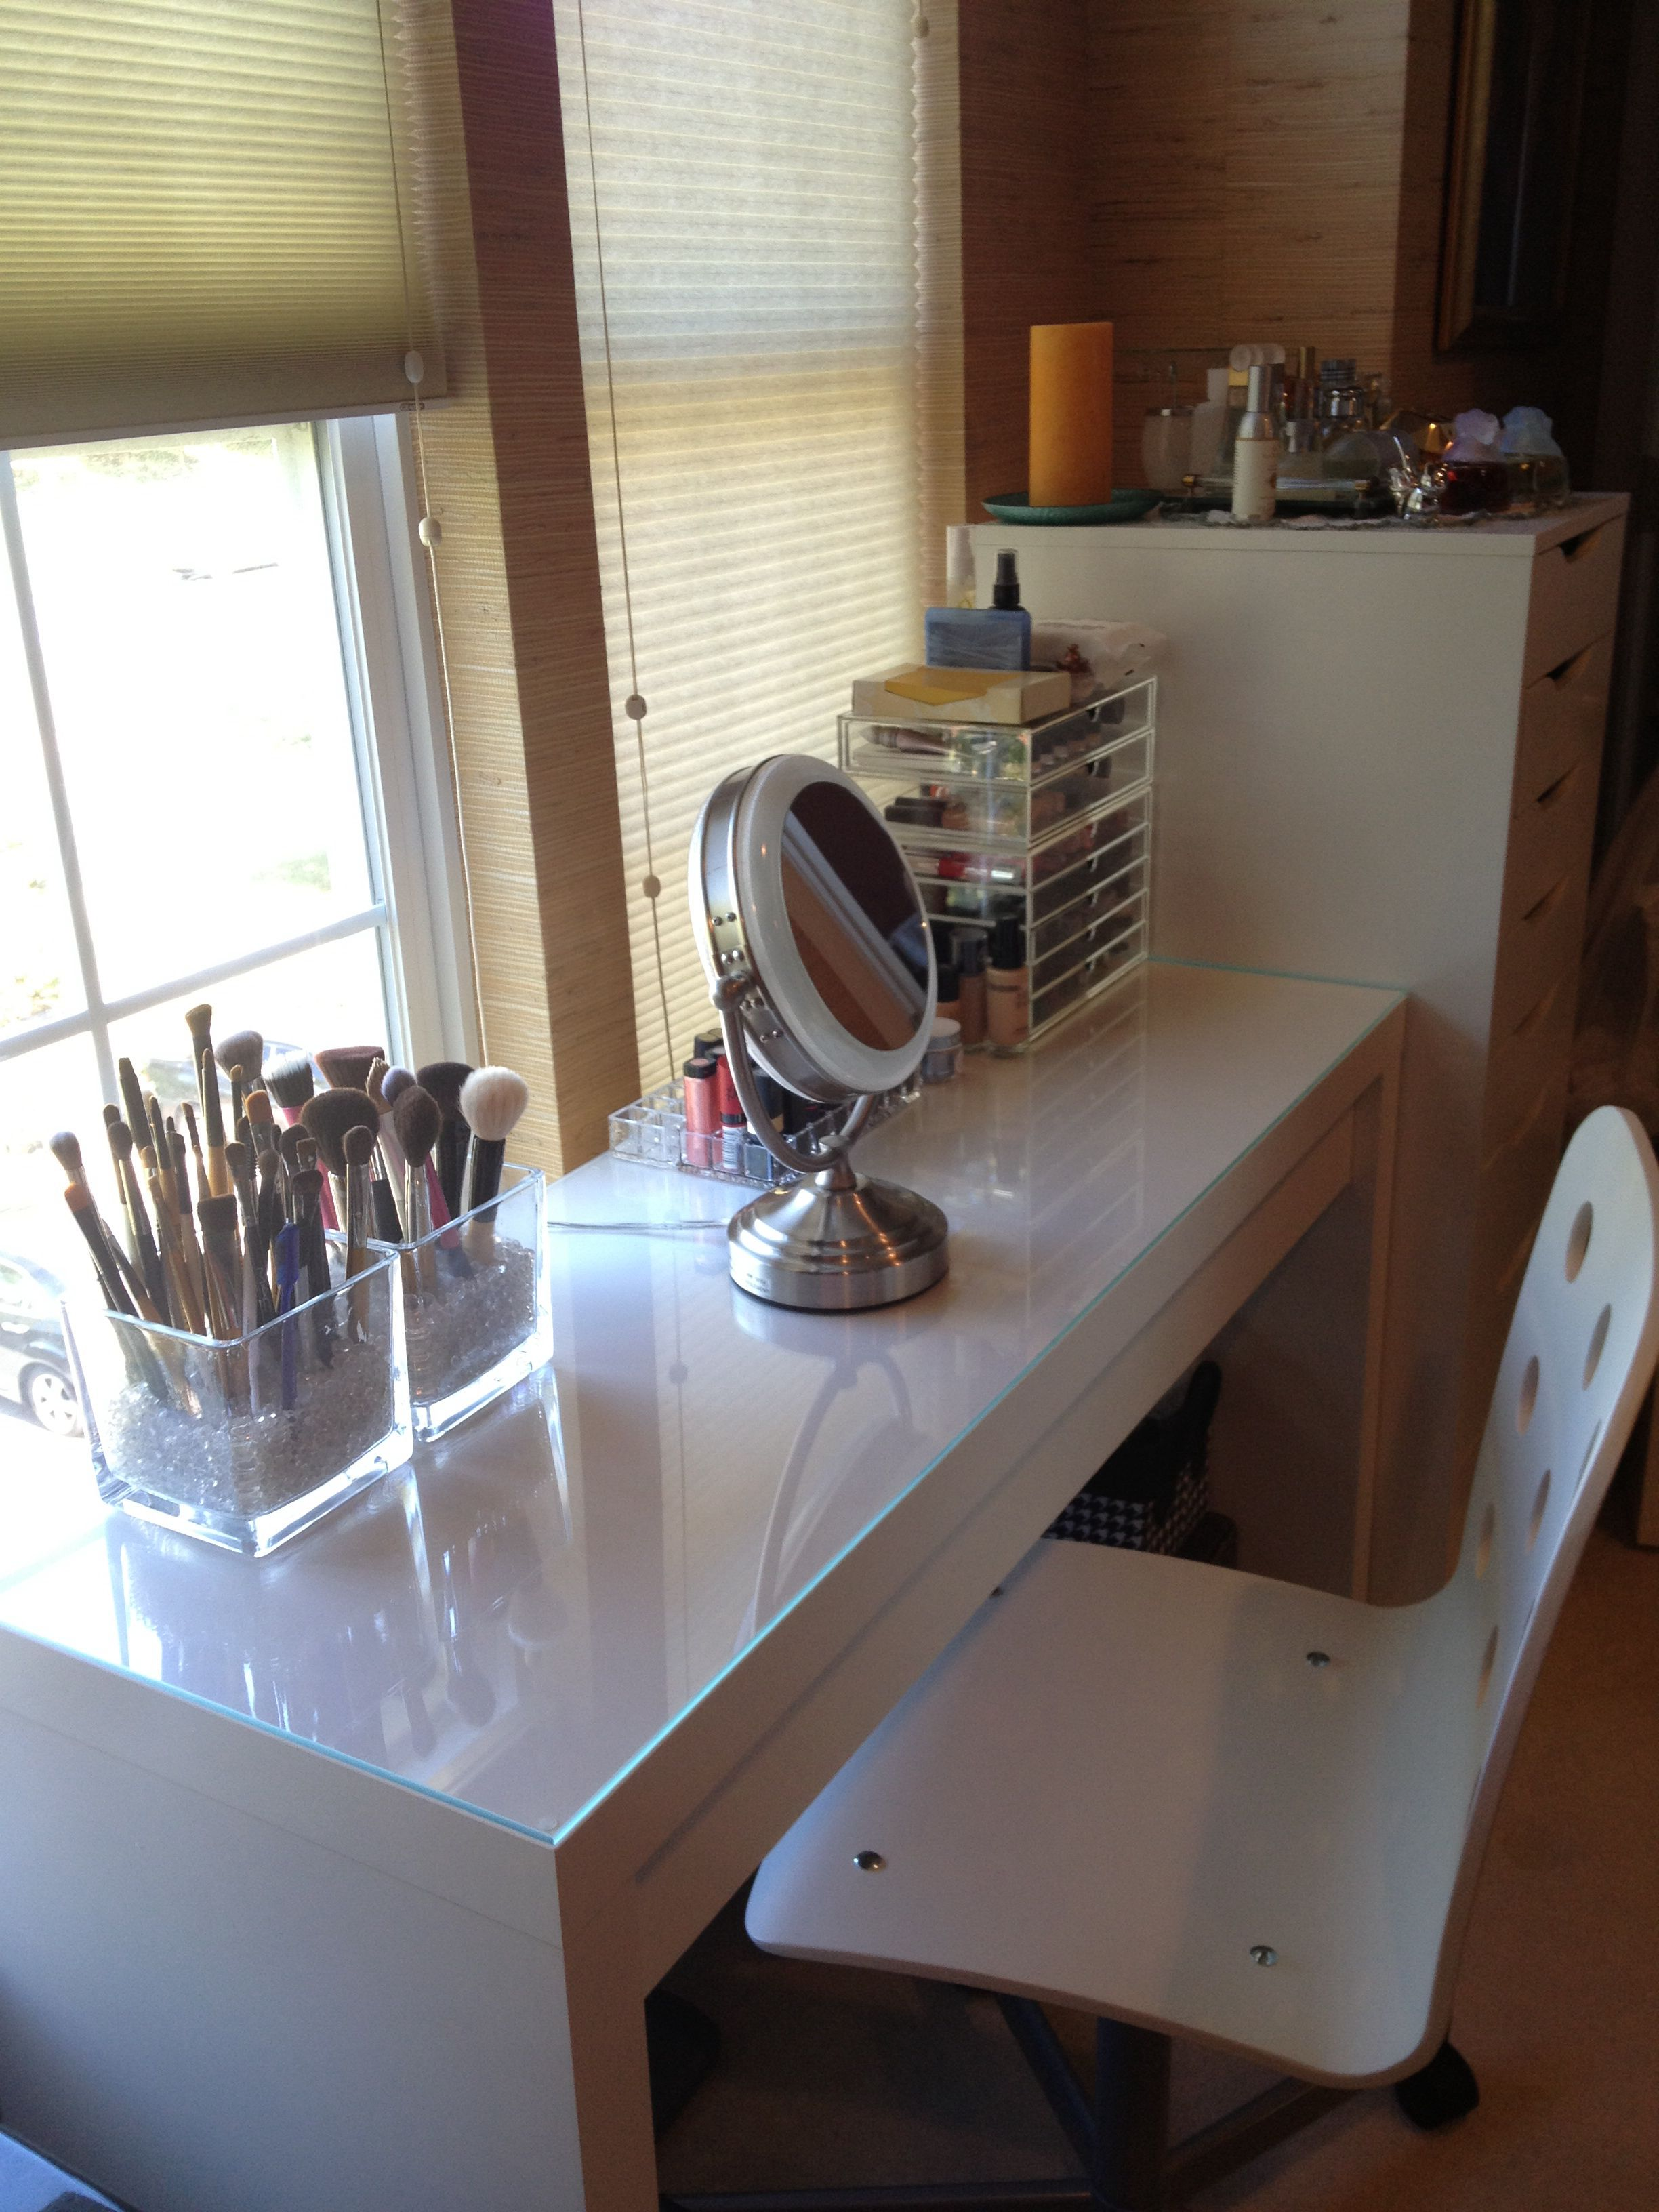 Ikea malm dressing table used as makeup vanity chair is also from